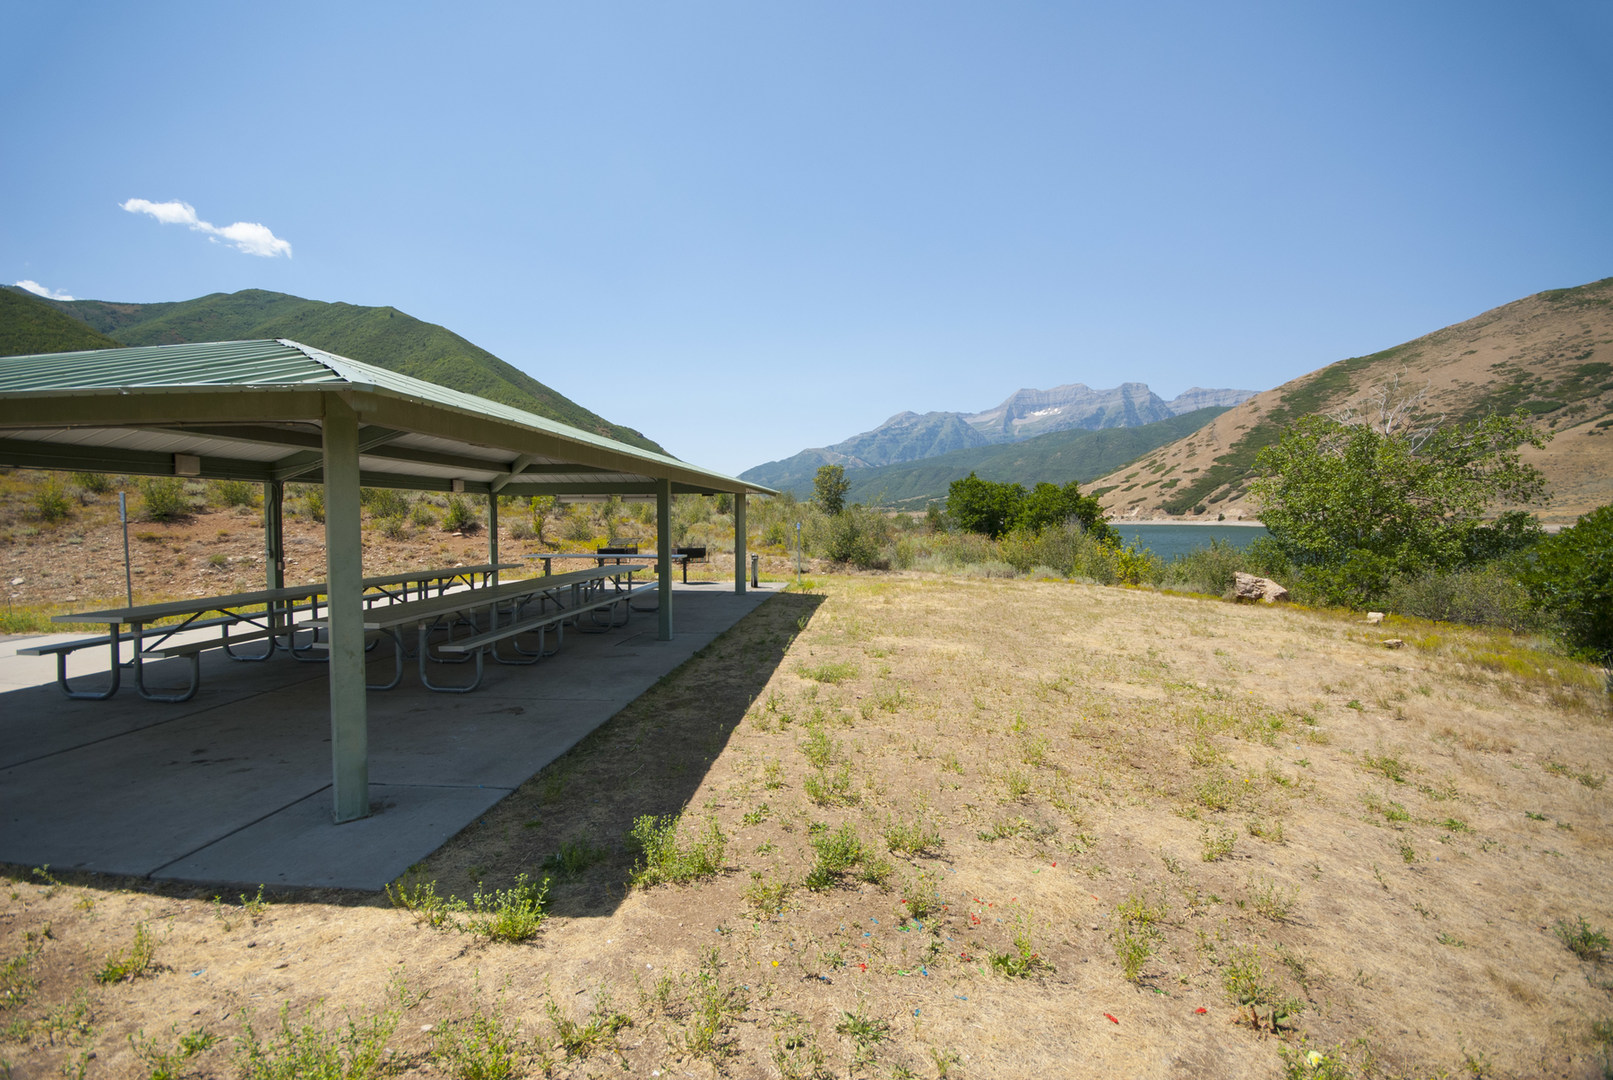 Utah Boat Shelters : Sailboat beach day use area deer creek state park